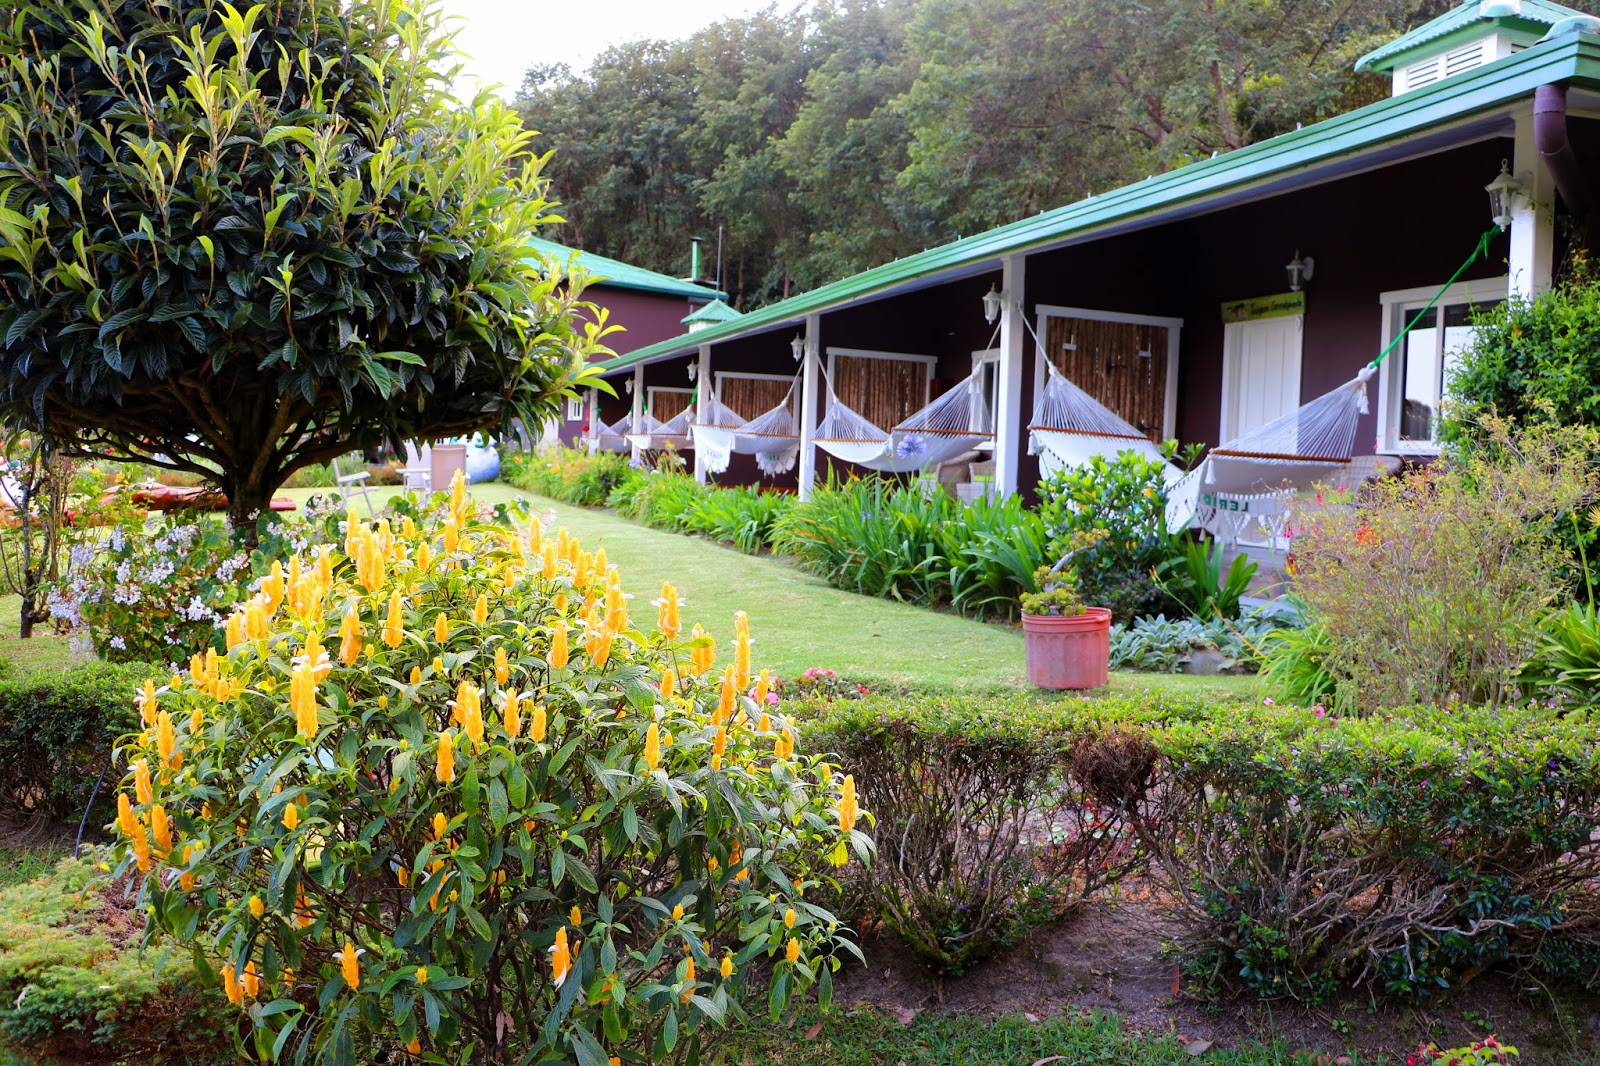 The beautiful Finca Lérida is a great place to stay and/or dine at Boquete, Chiriqui Panama